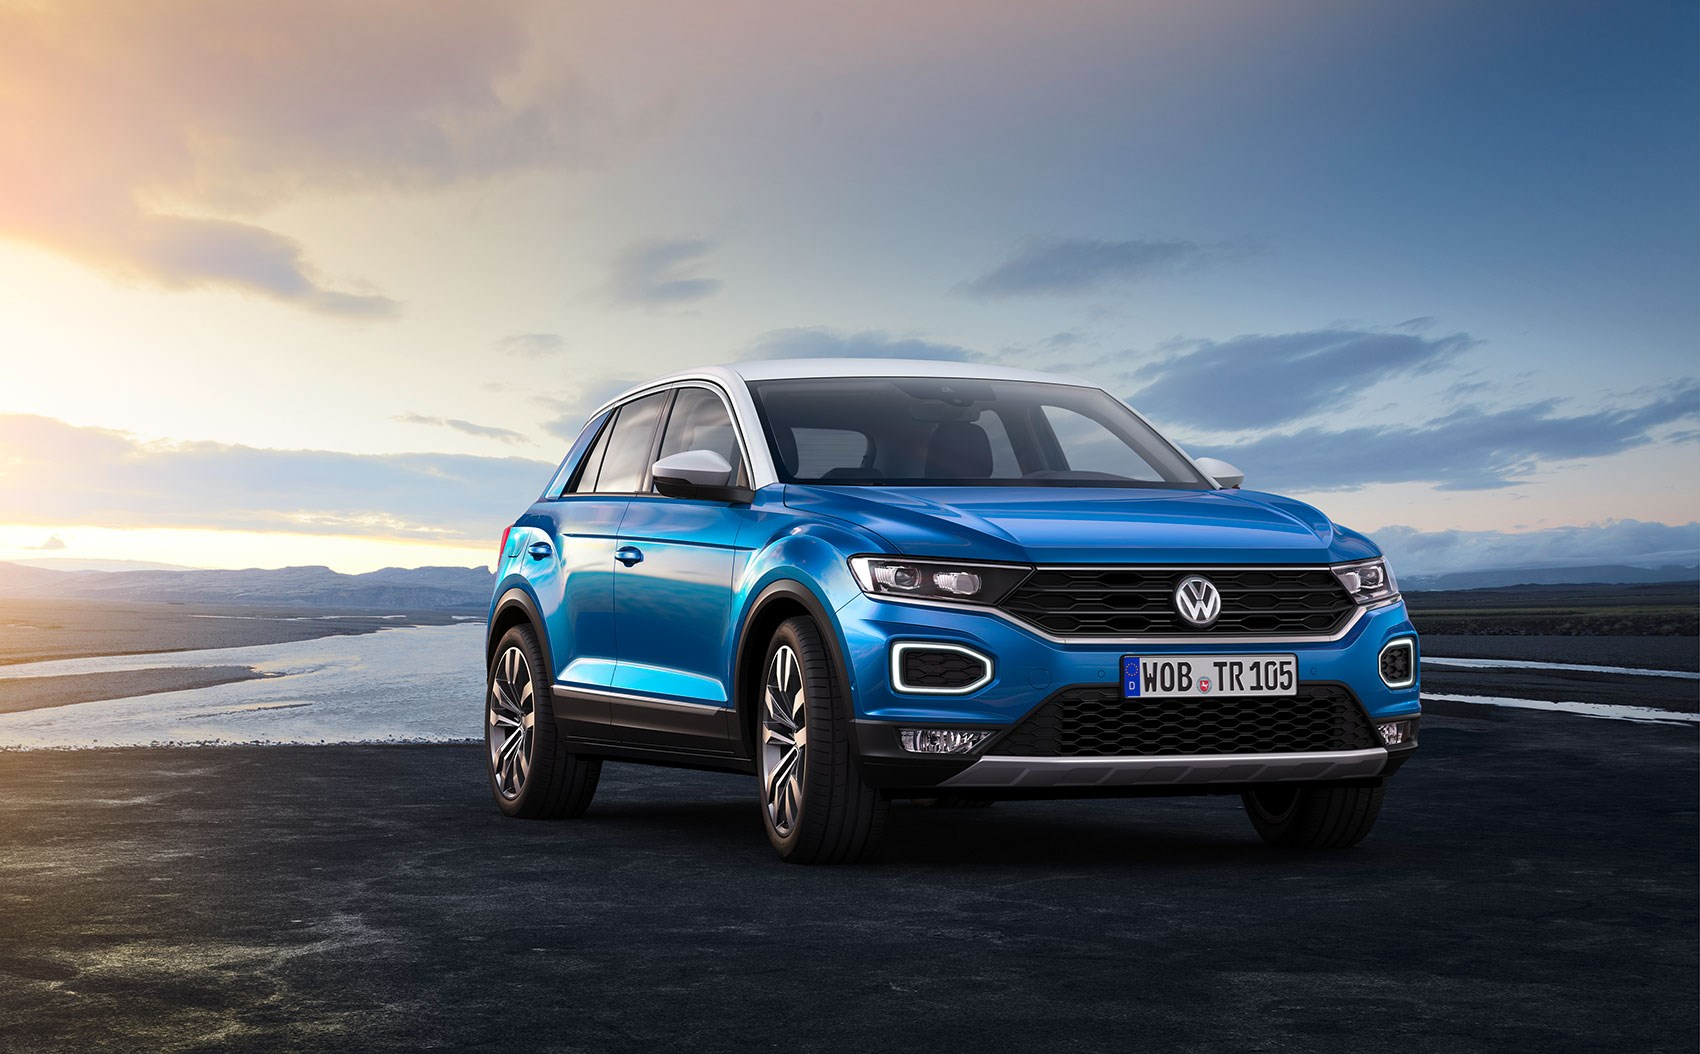 Vw t roc revealed news photos specs prices by car magazine for Auto interieur bekleden prijs